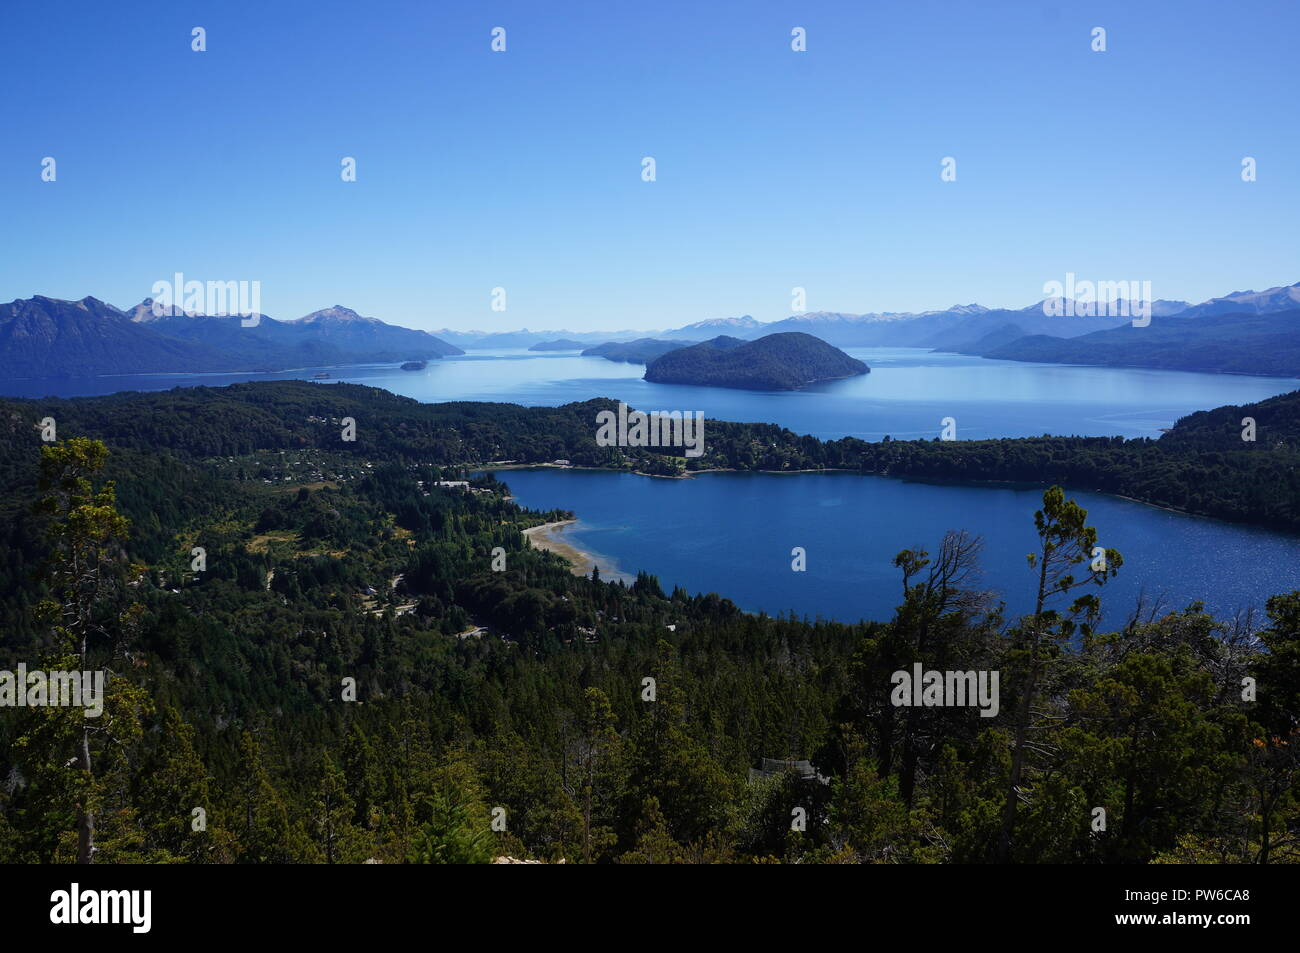 Beautiful views from atop Cerro Campanario with sights of Nahuel Huapi Lake and surrounding lush green islands.  San Carlos de Bariloche, Argentina. - Stock Image